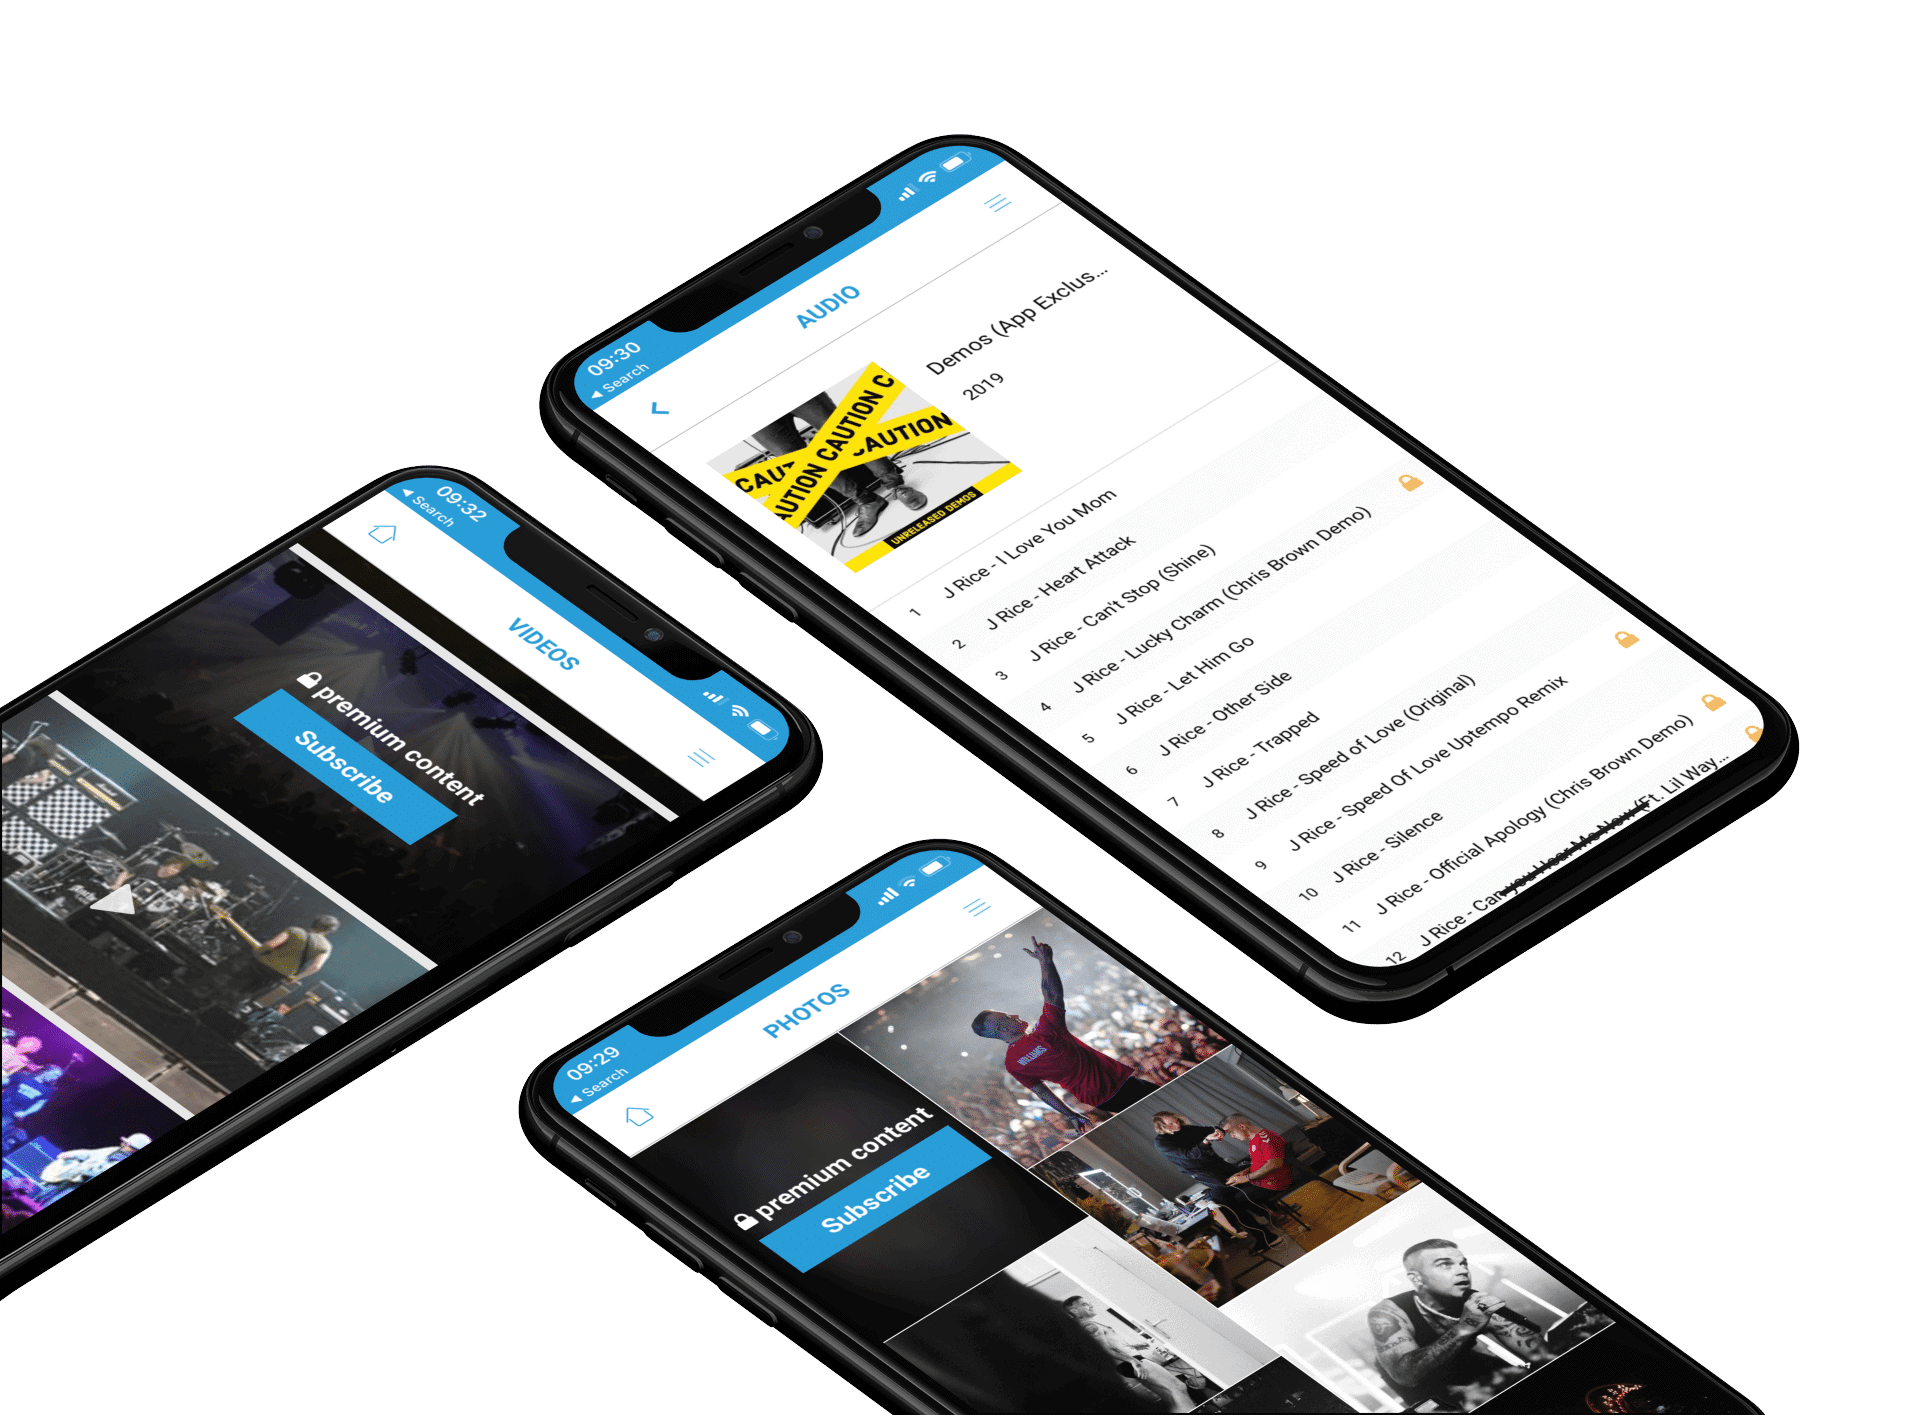 mockup of three iphones xs max lying on a customizable background 253 el Why Fan Apps?